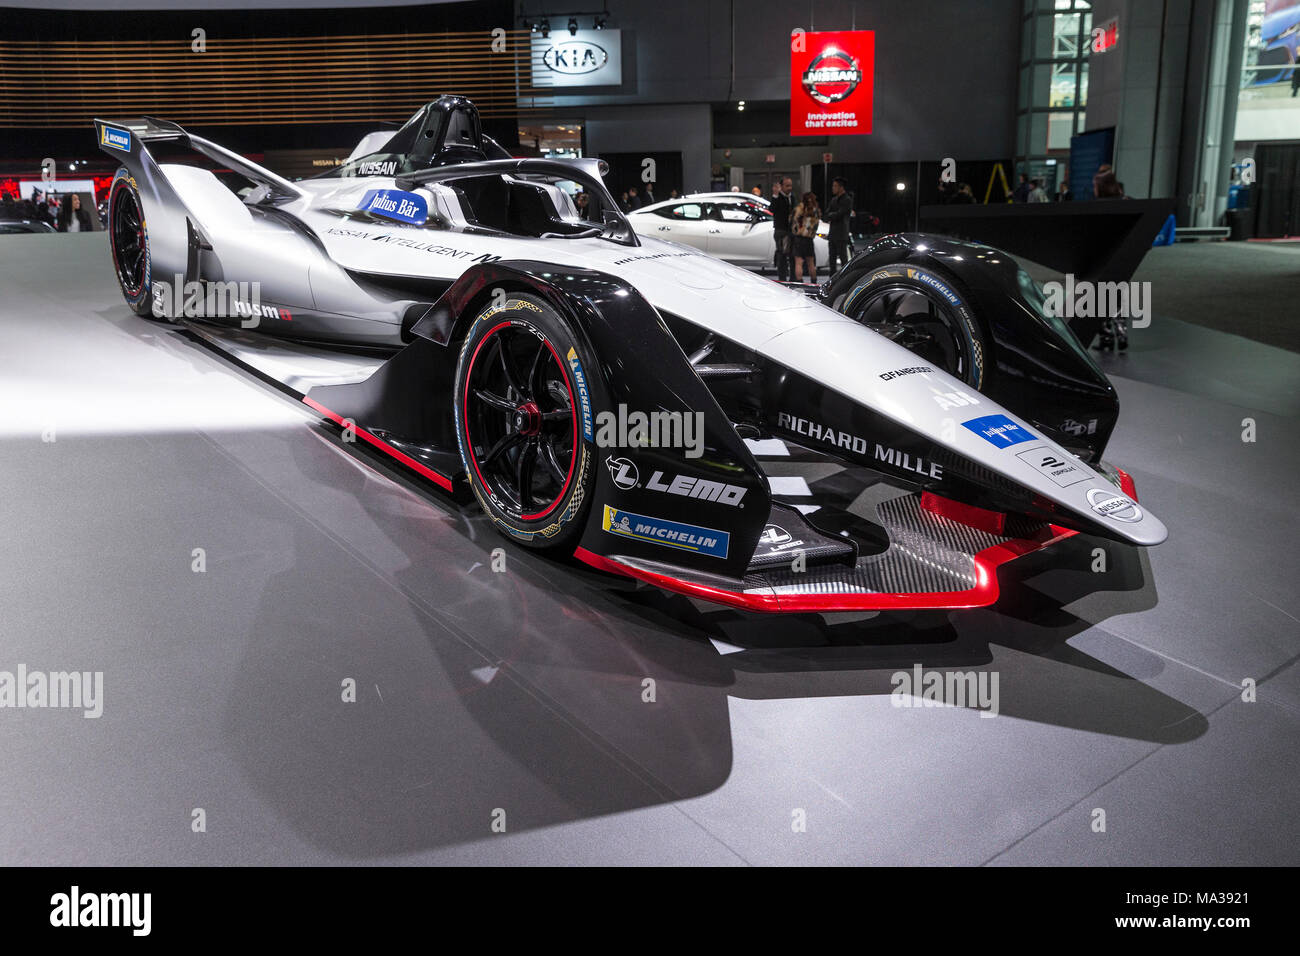 Nissan Race Car Formula E On Display In Nissan Pavilion At New - Car show javits center